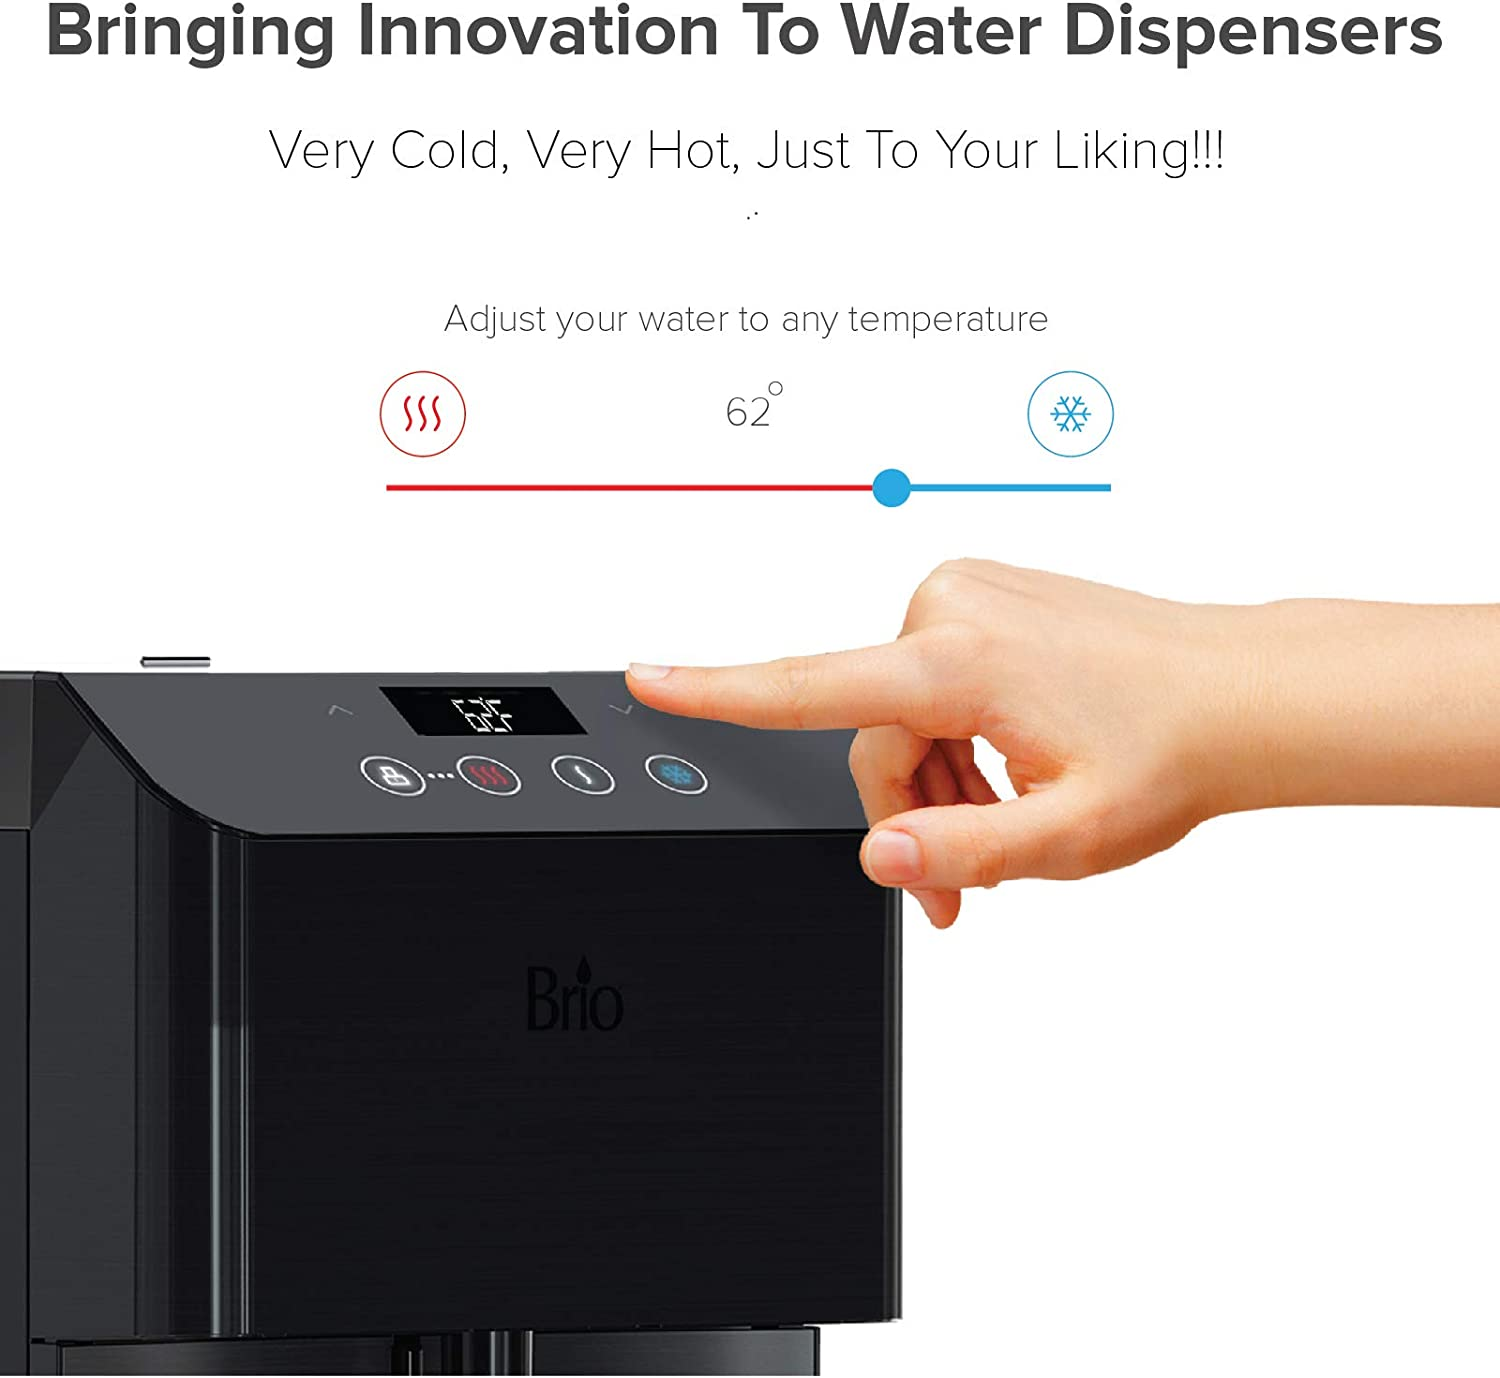 Adjustable Temperature Brio Moderna UV Self Cleaning Bottleless Water Cooler Dispenser with Filtration Digital Clock Cold and Room Black Stainless Steel Tri Temp Hot LED Nightlight